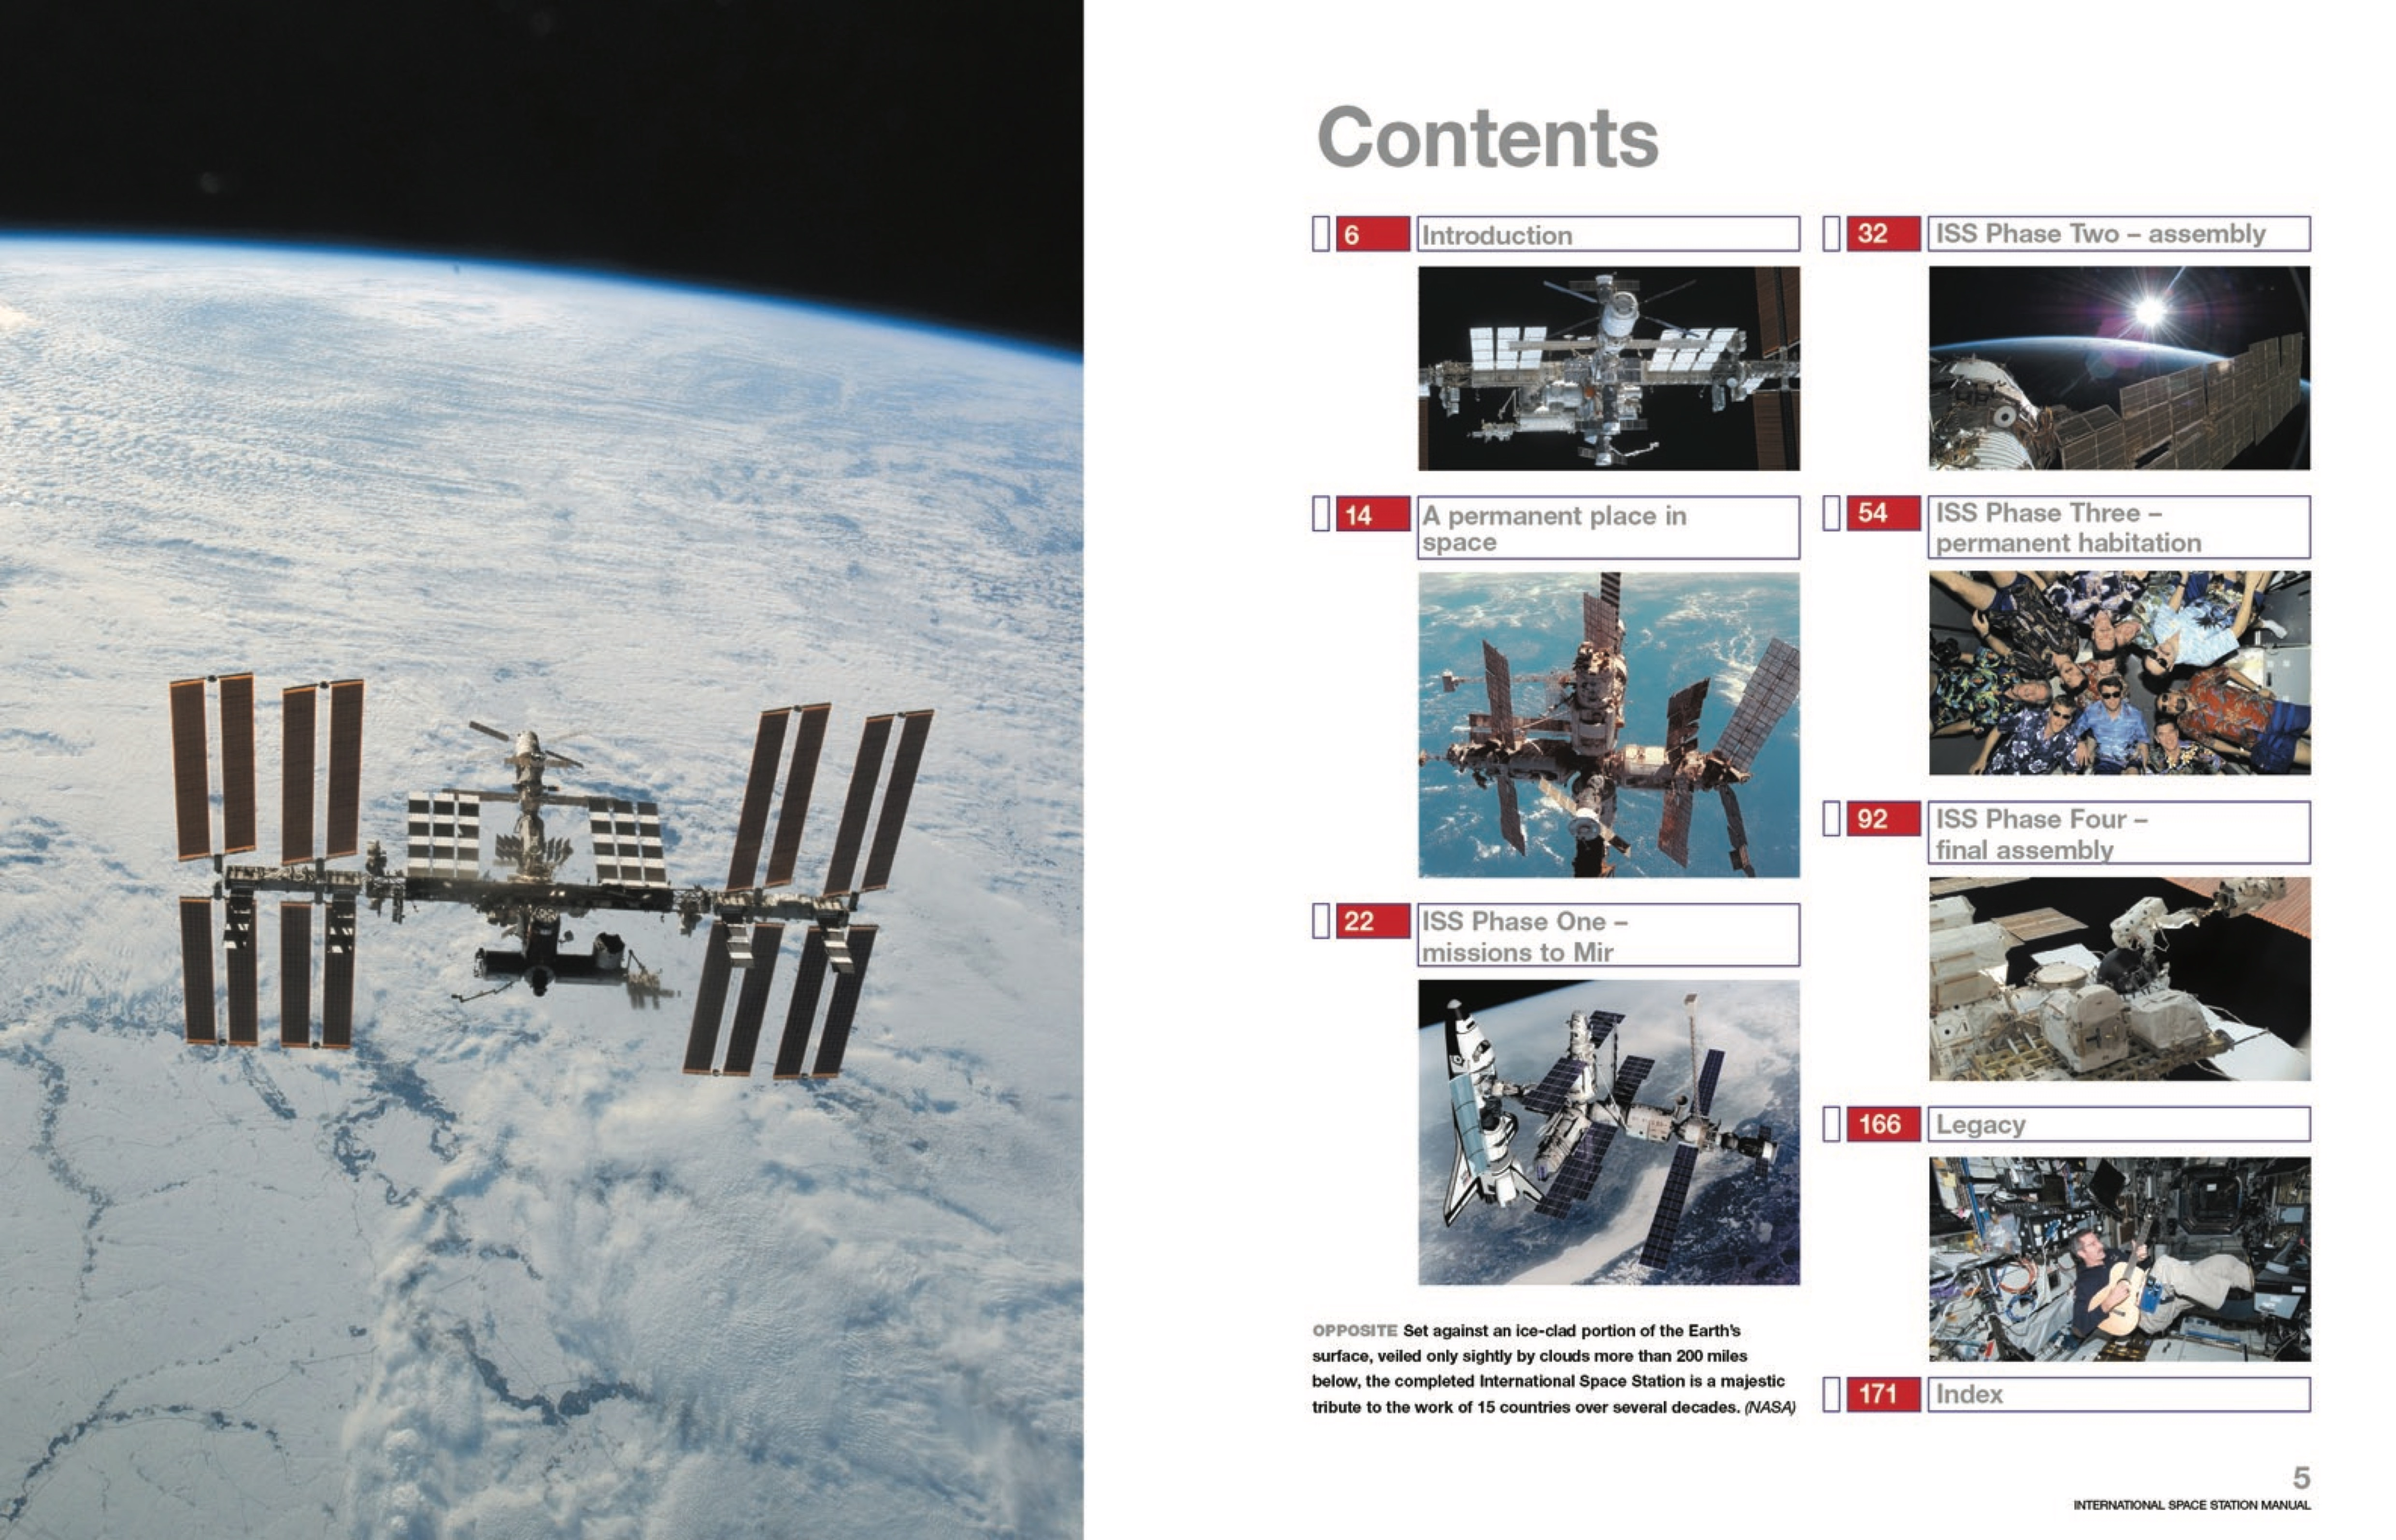 an introduction to the international space station Above: 375 km above earth's surface, solar arrays power the orbiting international space station the iss never leaves earth orbit, which reduces the power it needs.